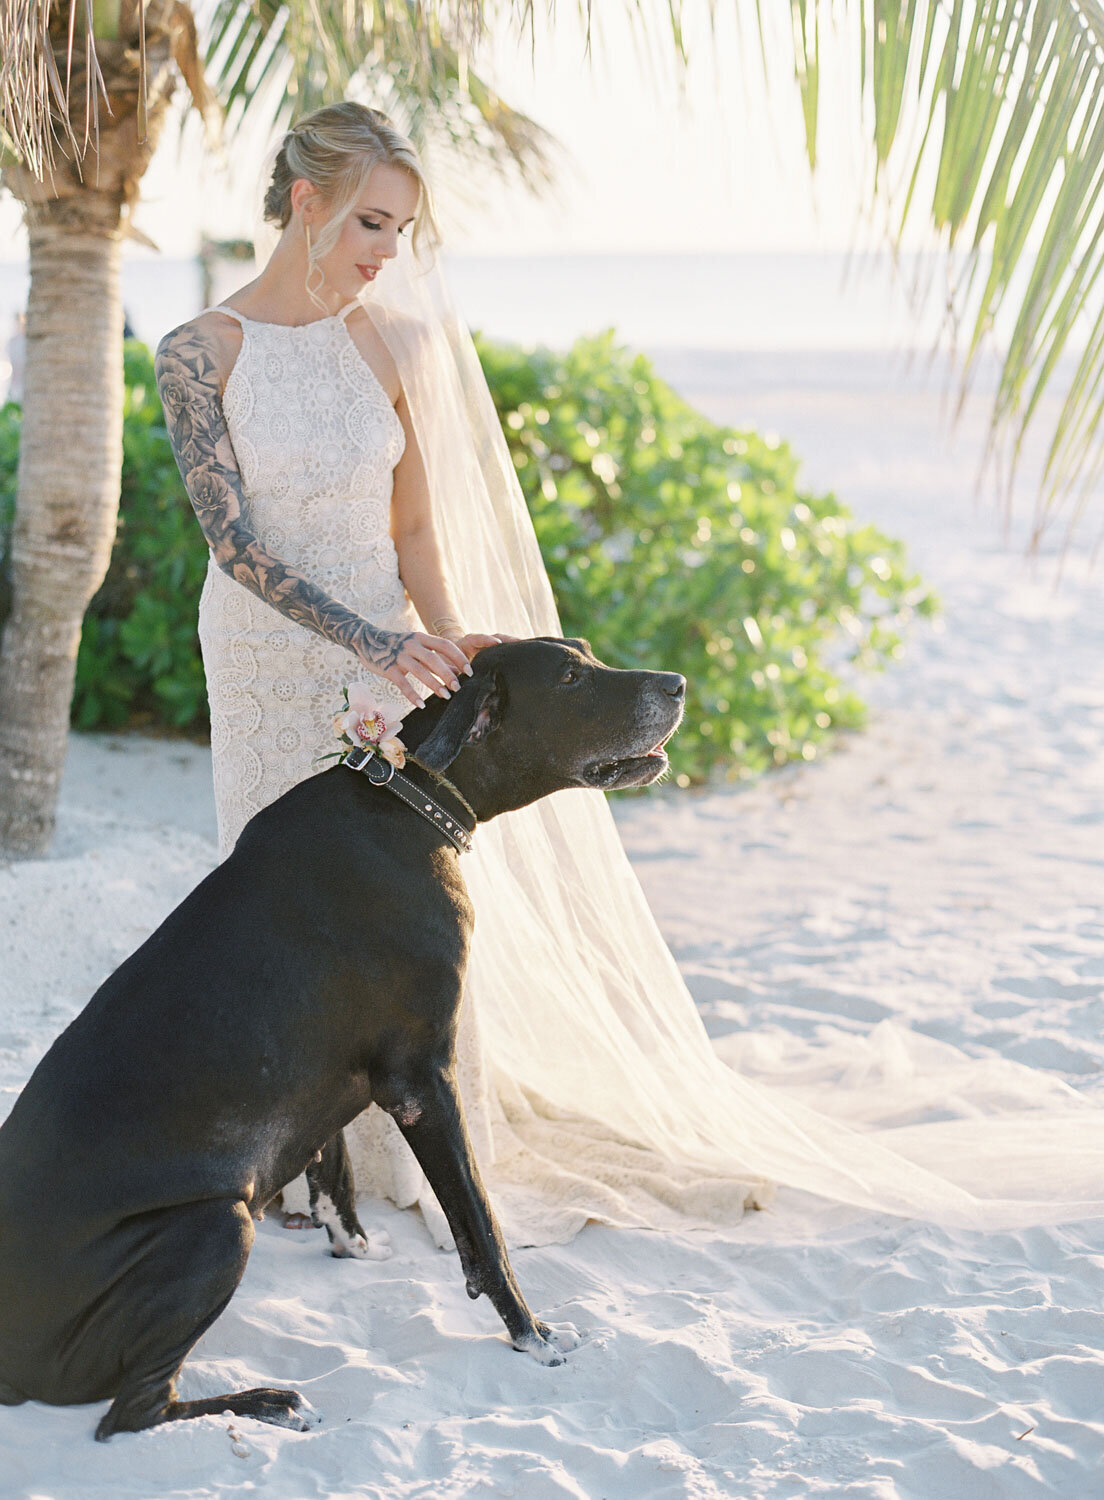 elegant-bohemian-tropical-december-destination-wedding-melanie-gabrielle-photography-martha-stewart-submission-058